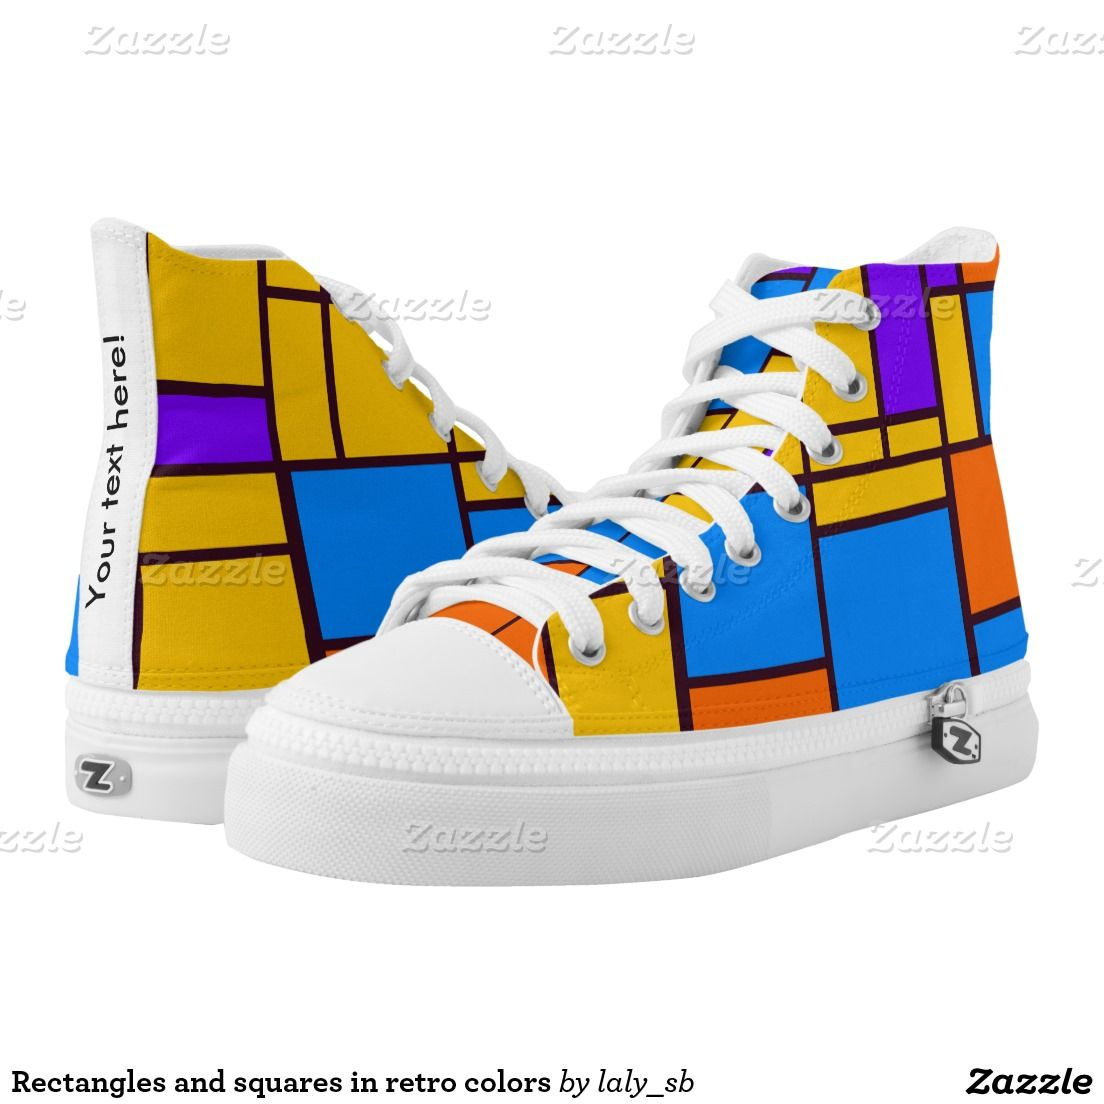 Rectangles and squares in retro colors printed shoes